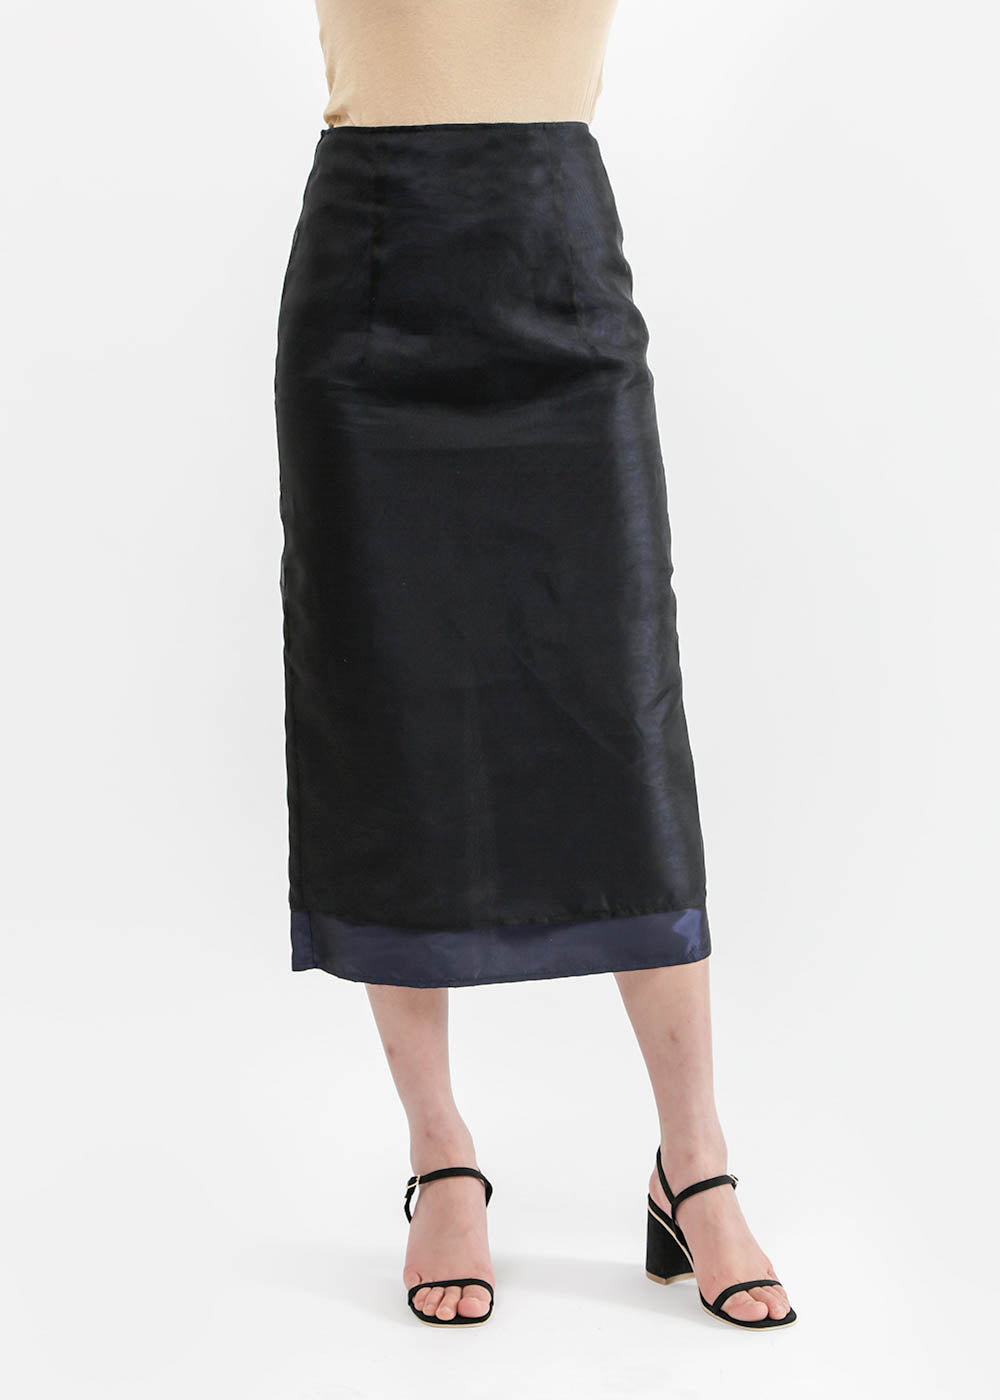 Suzanne Rae Double Layer A-Line Skirt — Shop sustainable fashion and slow fashion at New Classics Studios